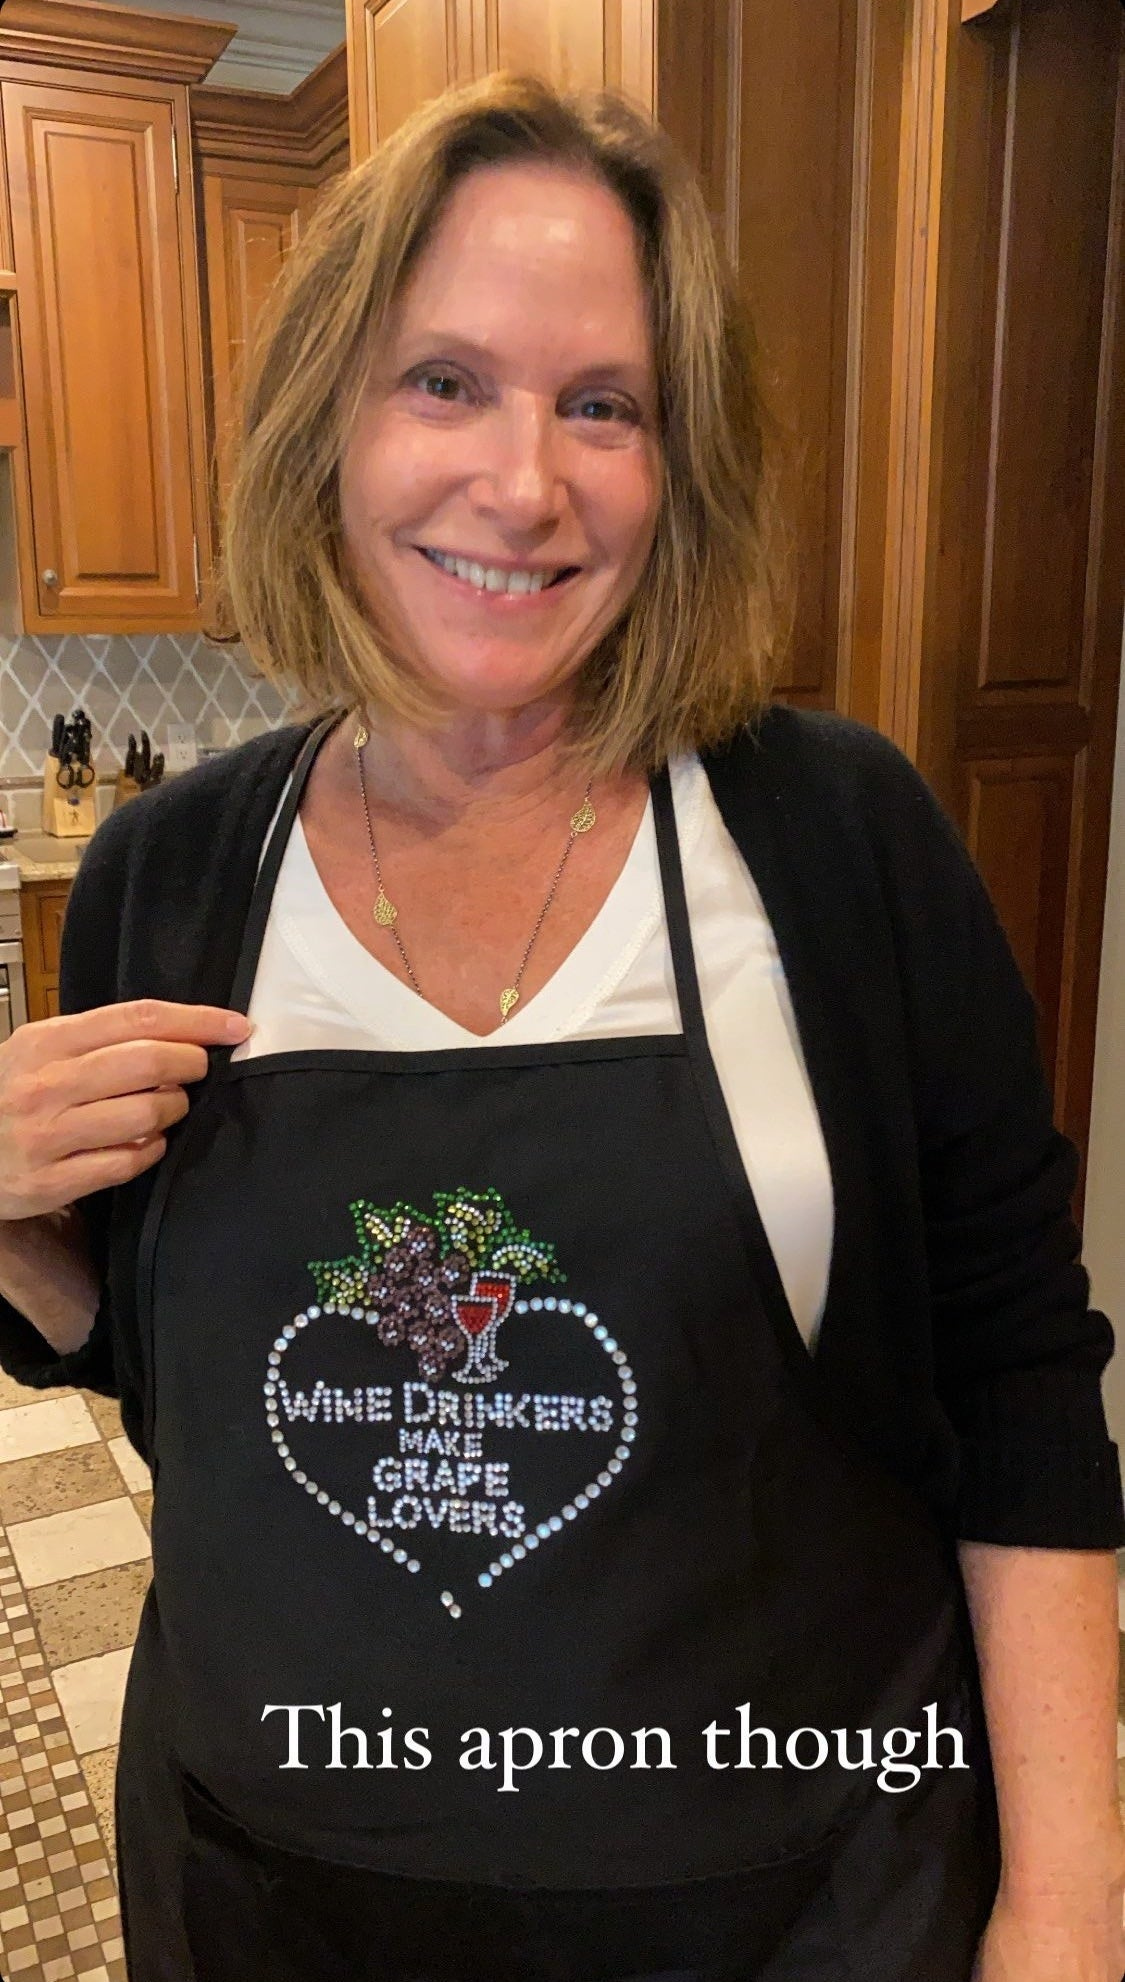 My mom in the kitchen wearing a funny and suggestive apron.